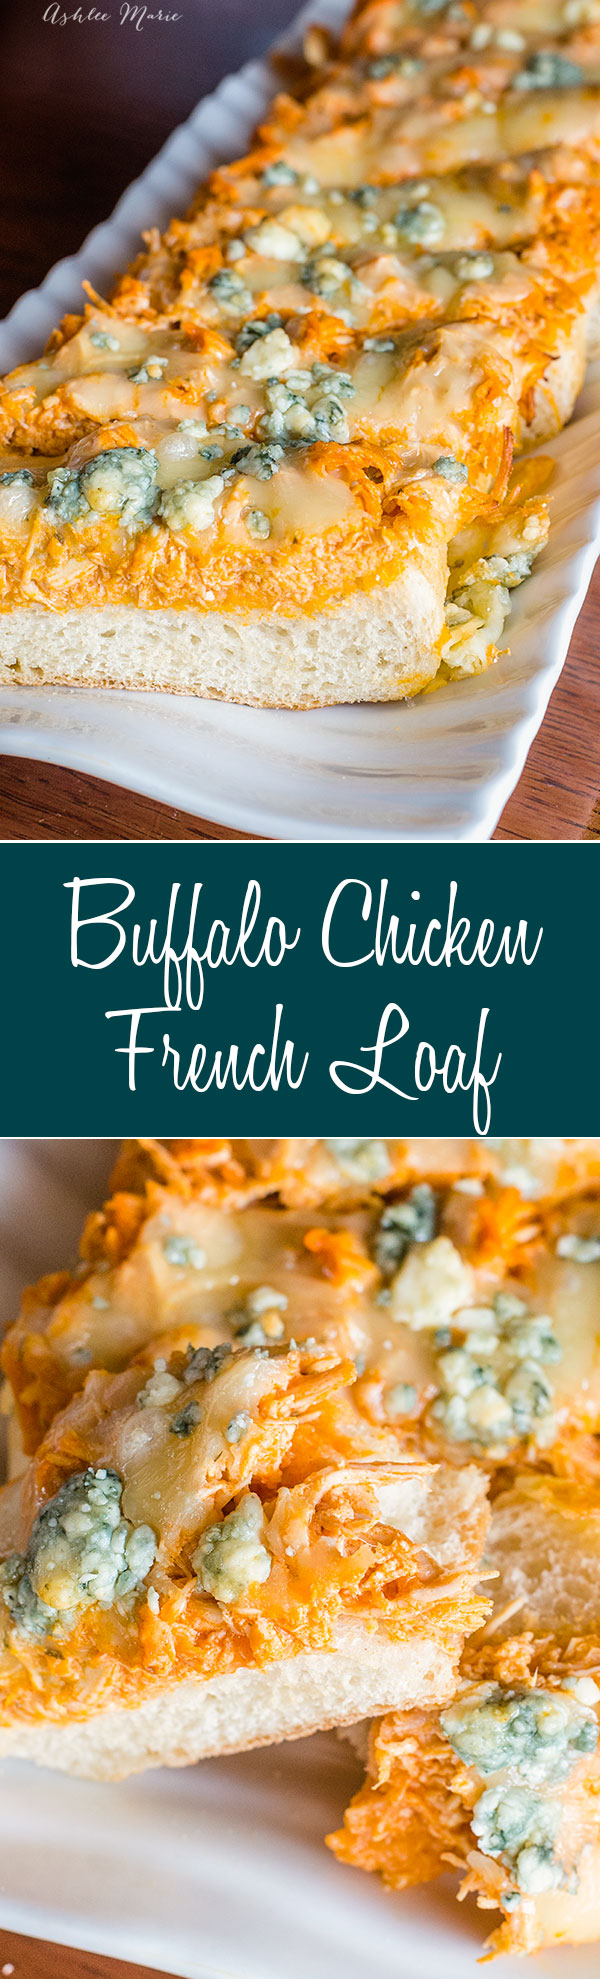 this shredded buffalo chicken is easy to make in the crock pot and serve in over buns, tortillas or on top of french bread, add cheese and warm in the oven and you have a spicy delicious snack